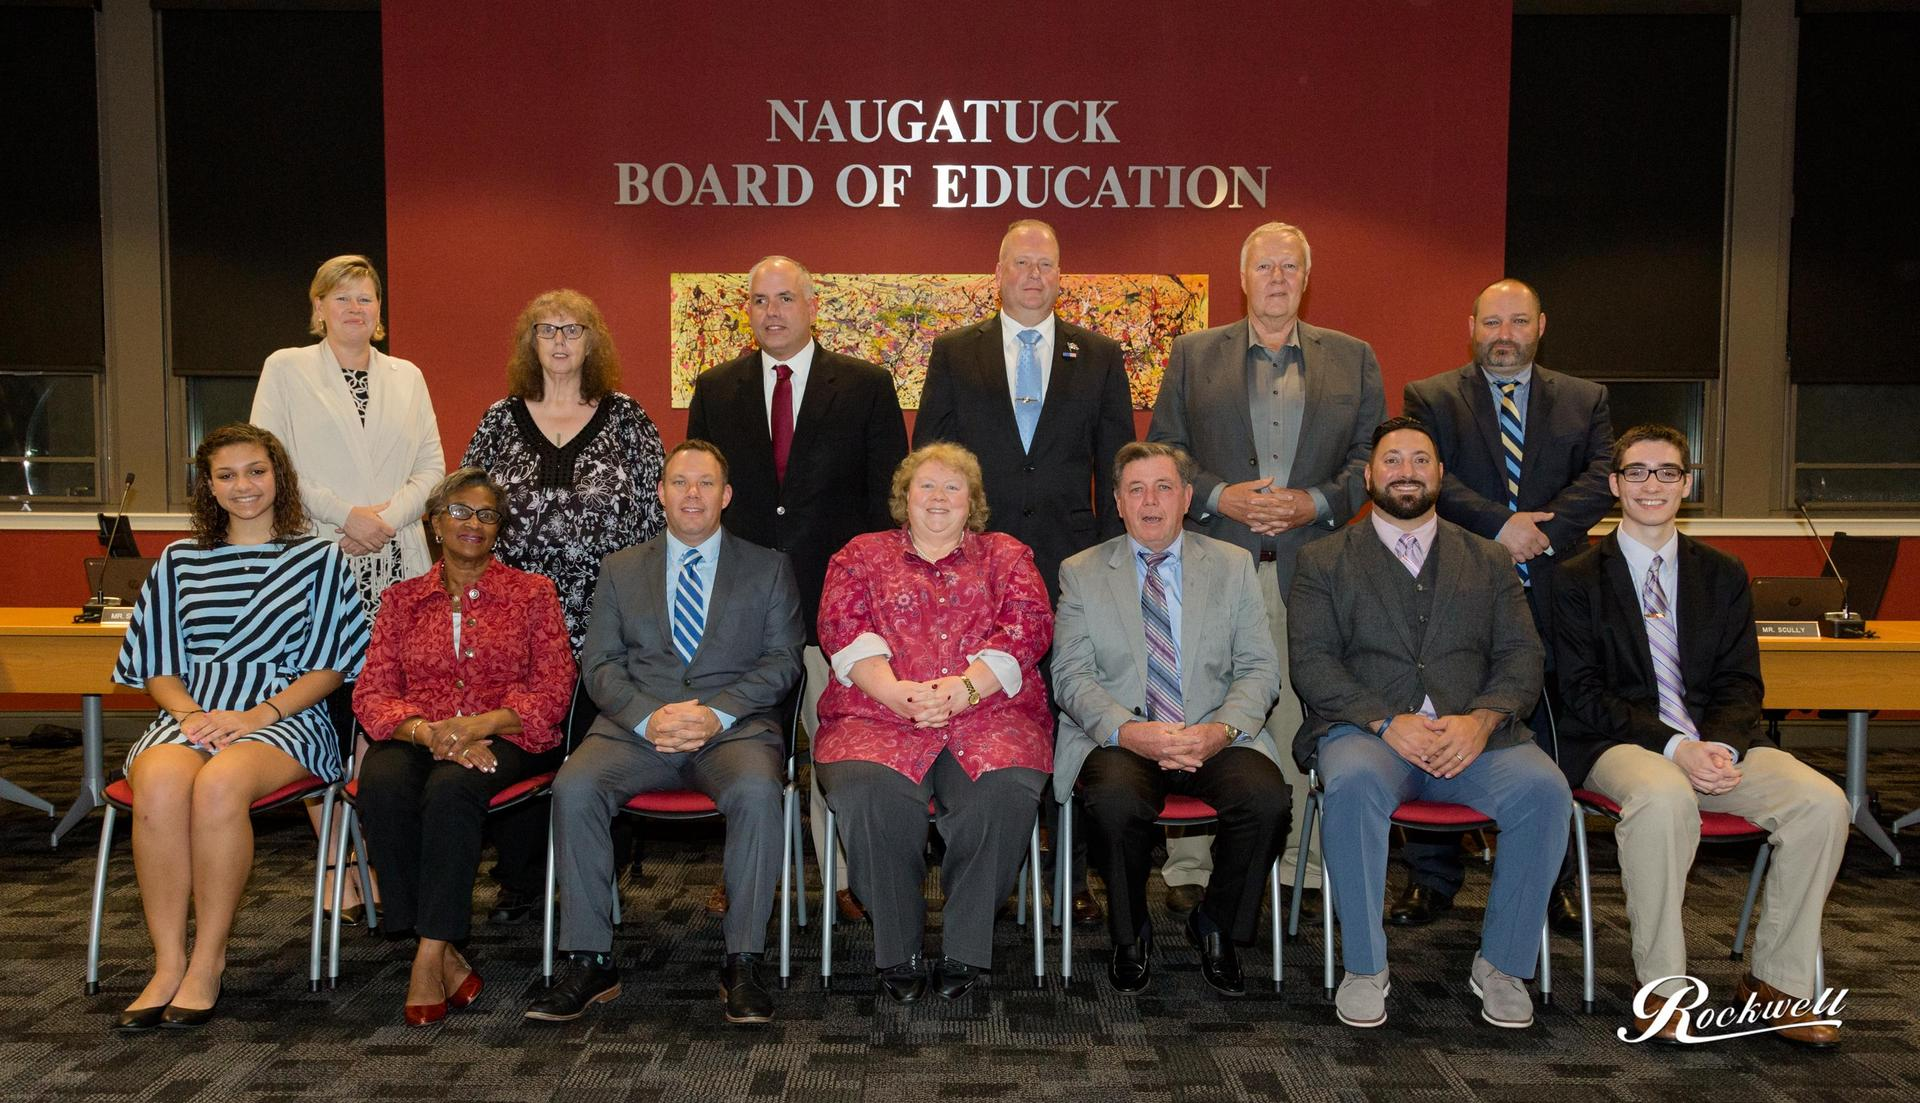 Board of Education members pose for a photo